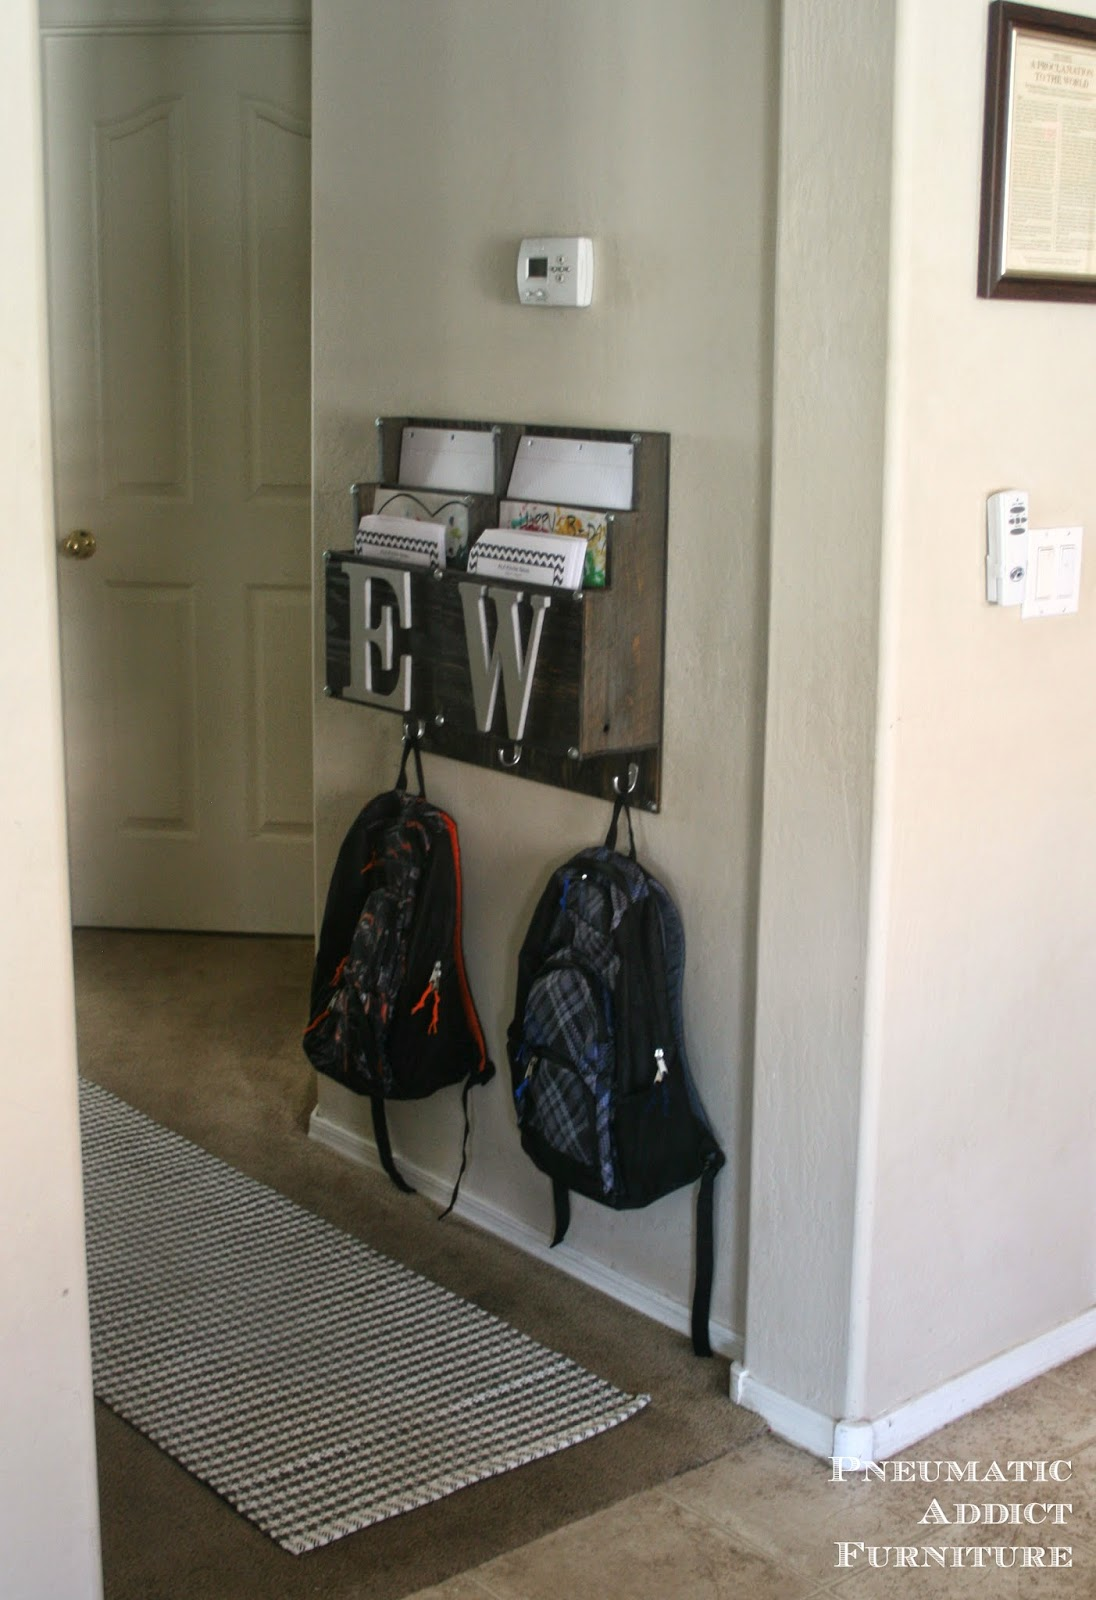 Pneumatic addict diy backpack and homework center Ideas for hanging backpacks